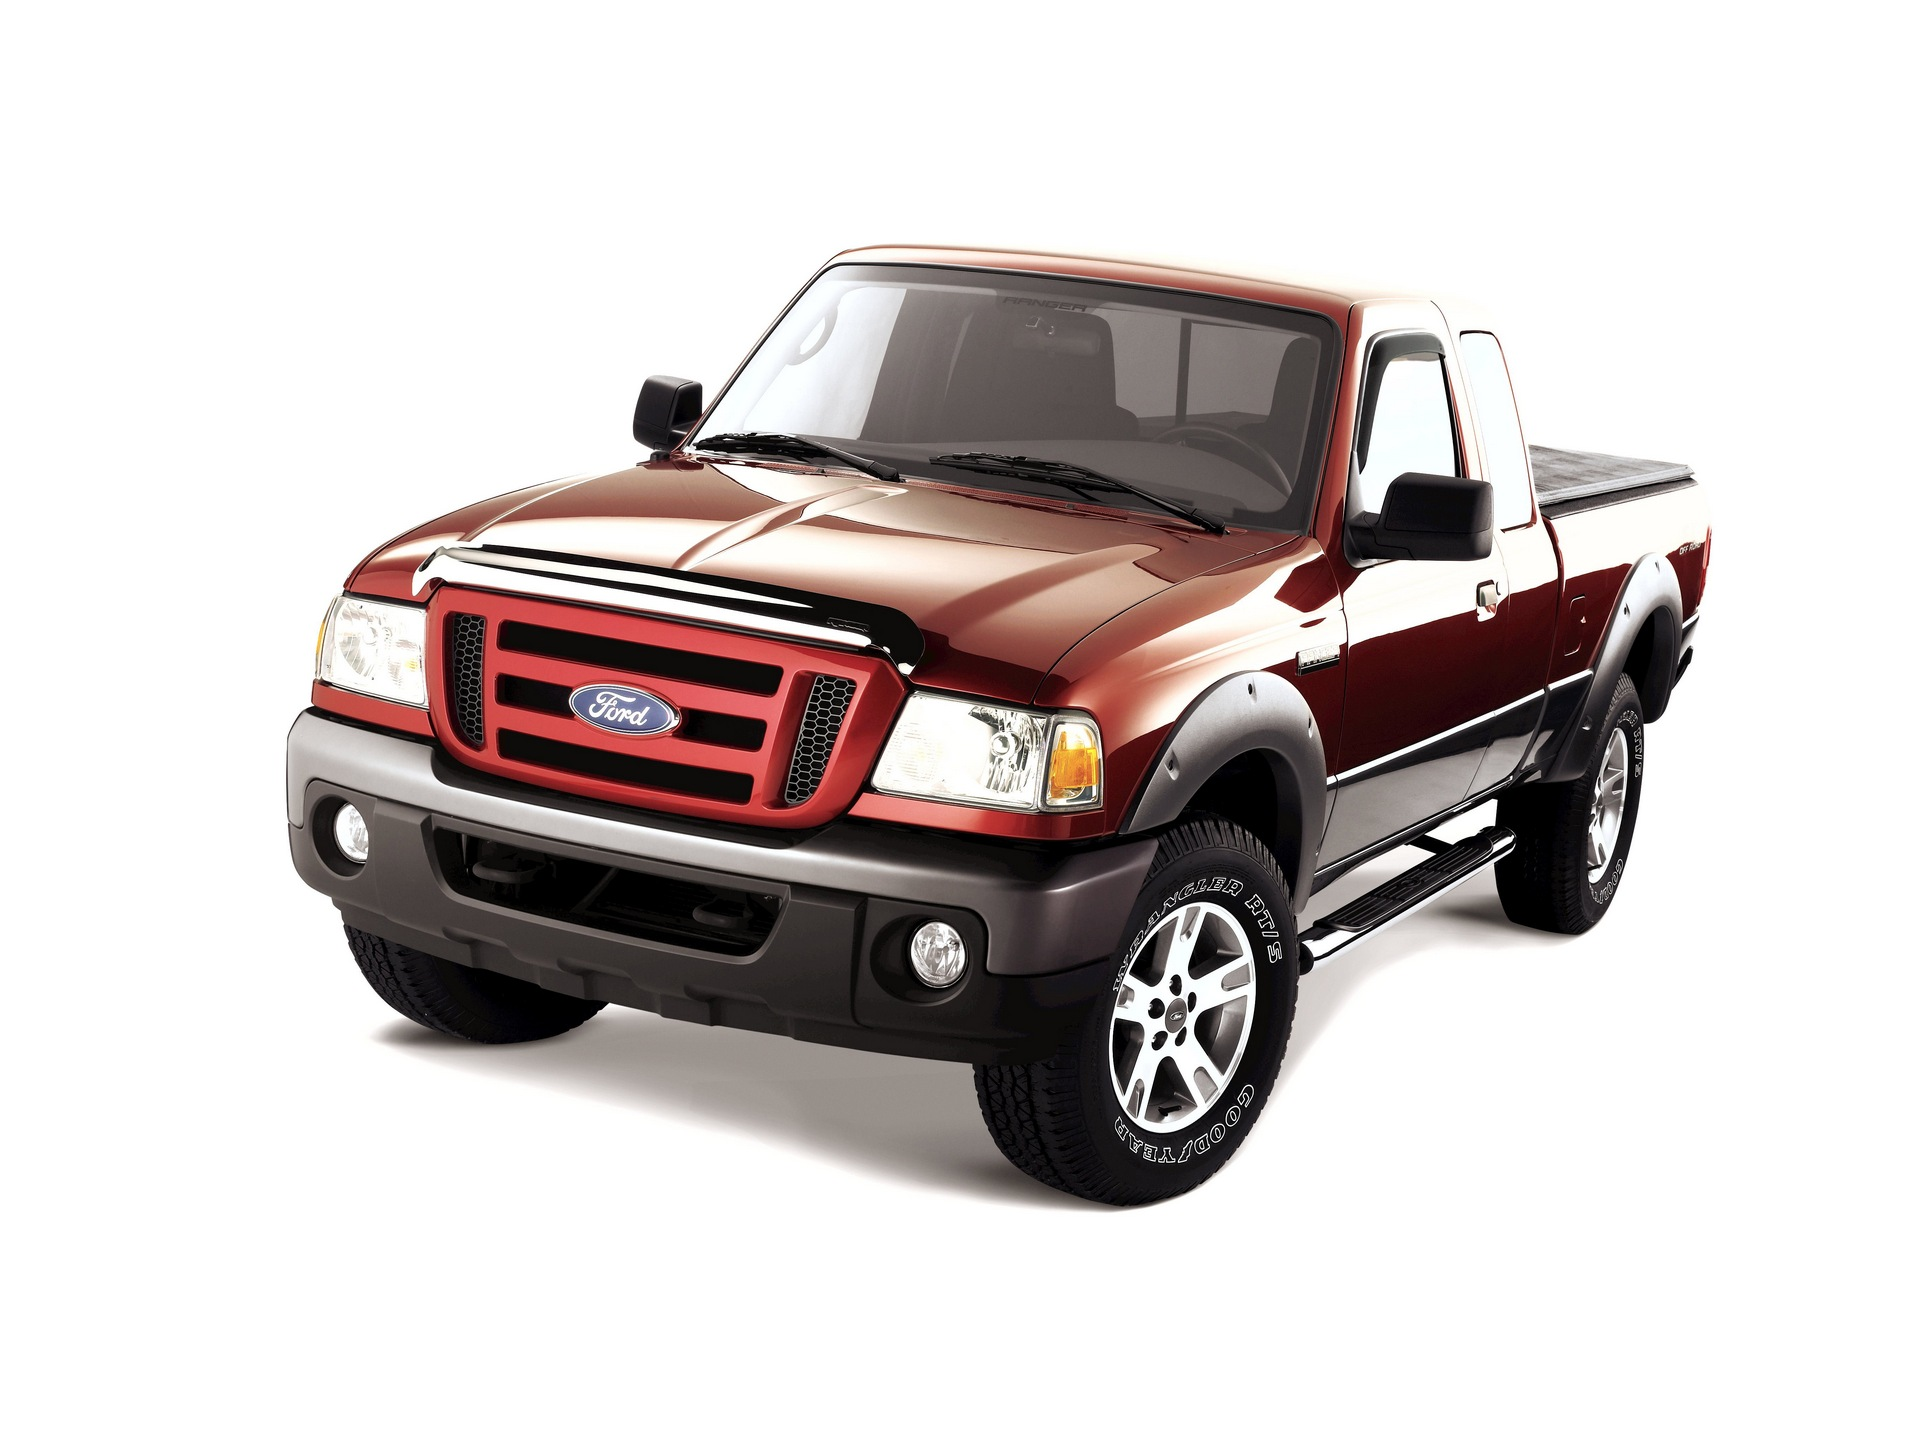 Dodge Small Suv >> 2008 Ford Ranger News and Information | conceptcarz.com